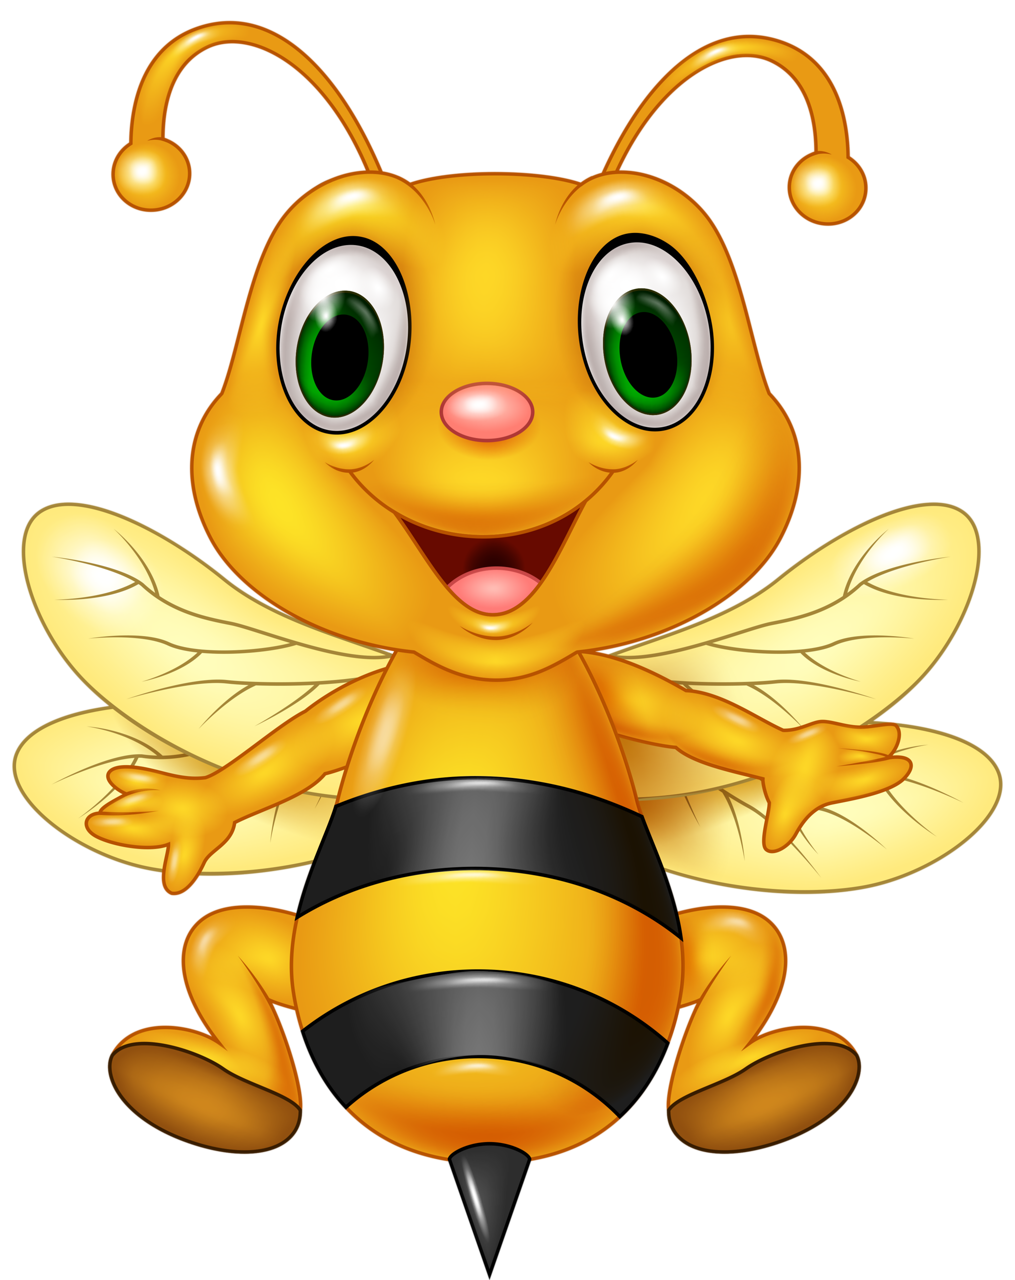 Heart clipart bee. Funny cartoon animals vector